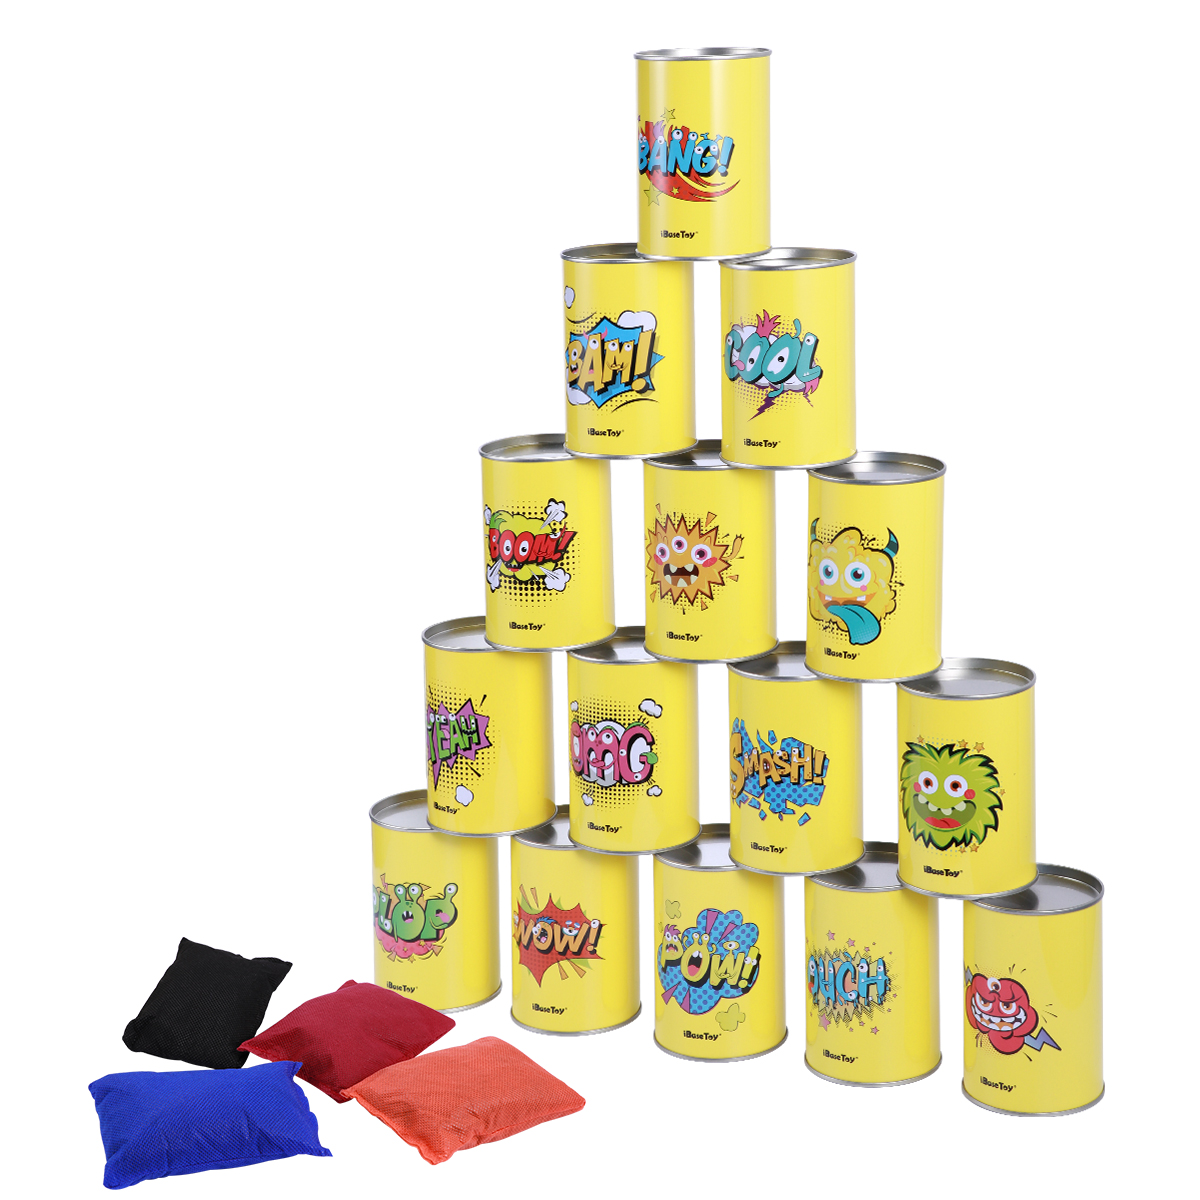 Bean Bag Can Toss Game Set Party Supplies Tin Can Alley Game For Kids Birthday Parties 15 Tin Cans And 4 Bean Bags Included